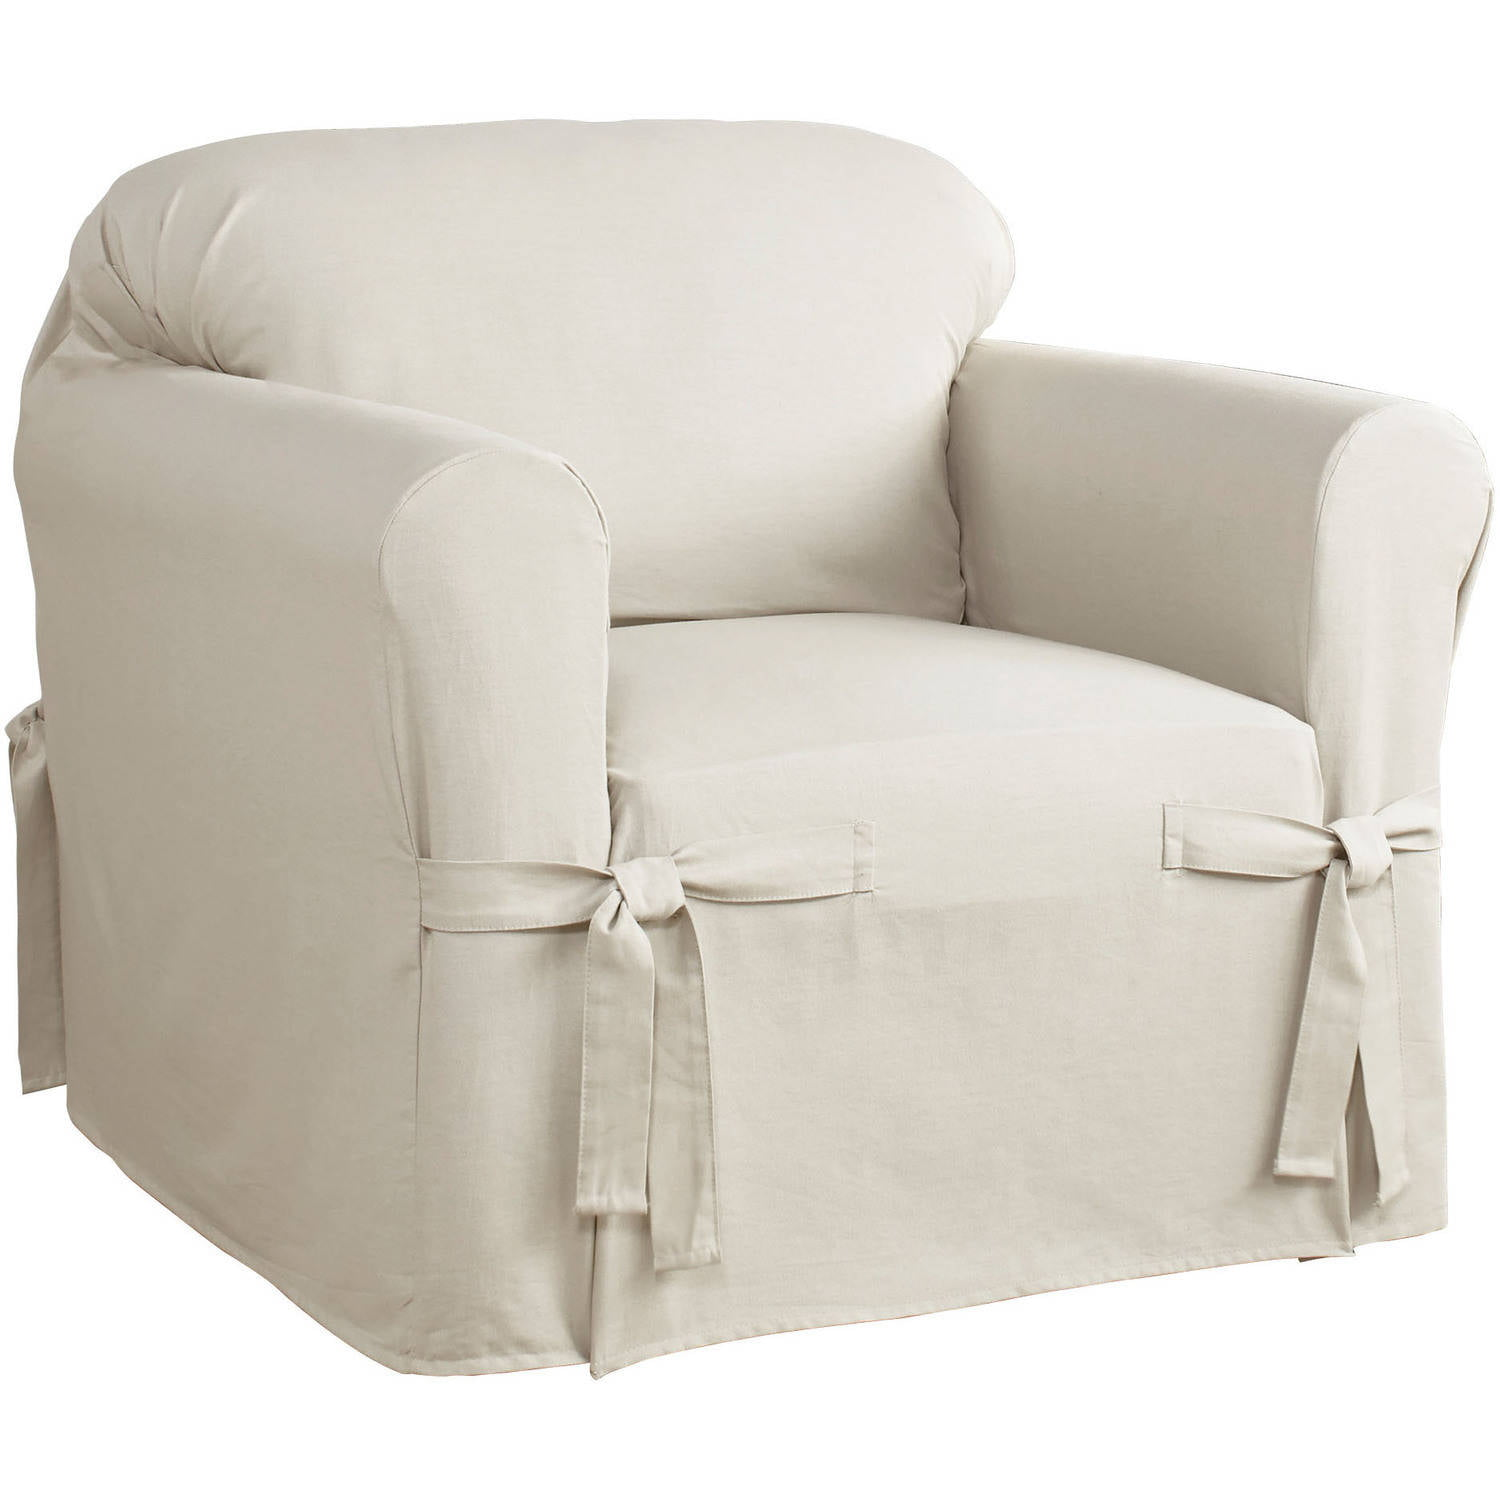 Serta Relaxed Fit Cotton Duck Furniture Slipcover, Chair 1 Piece Box  Cushion   Walmart.com